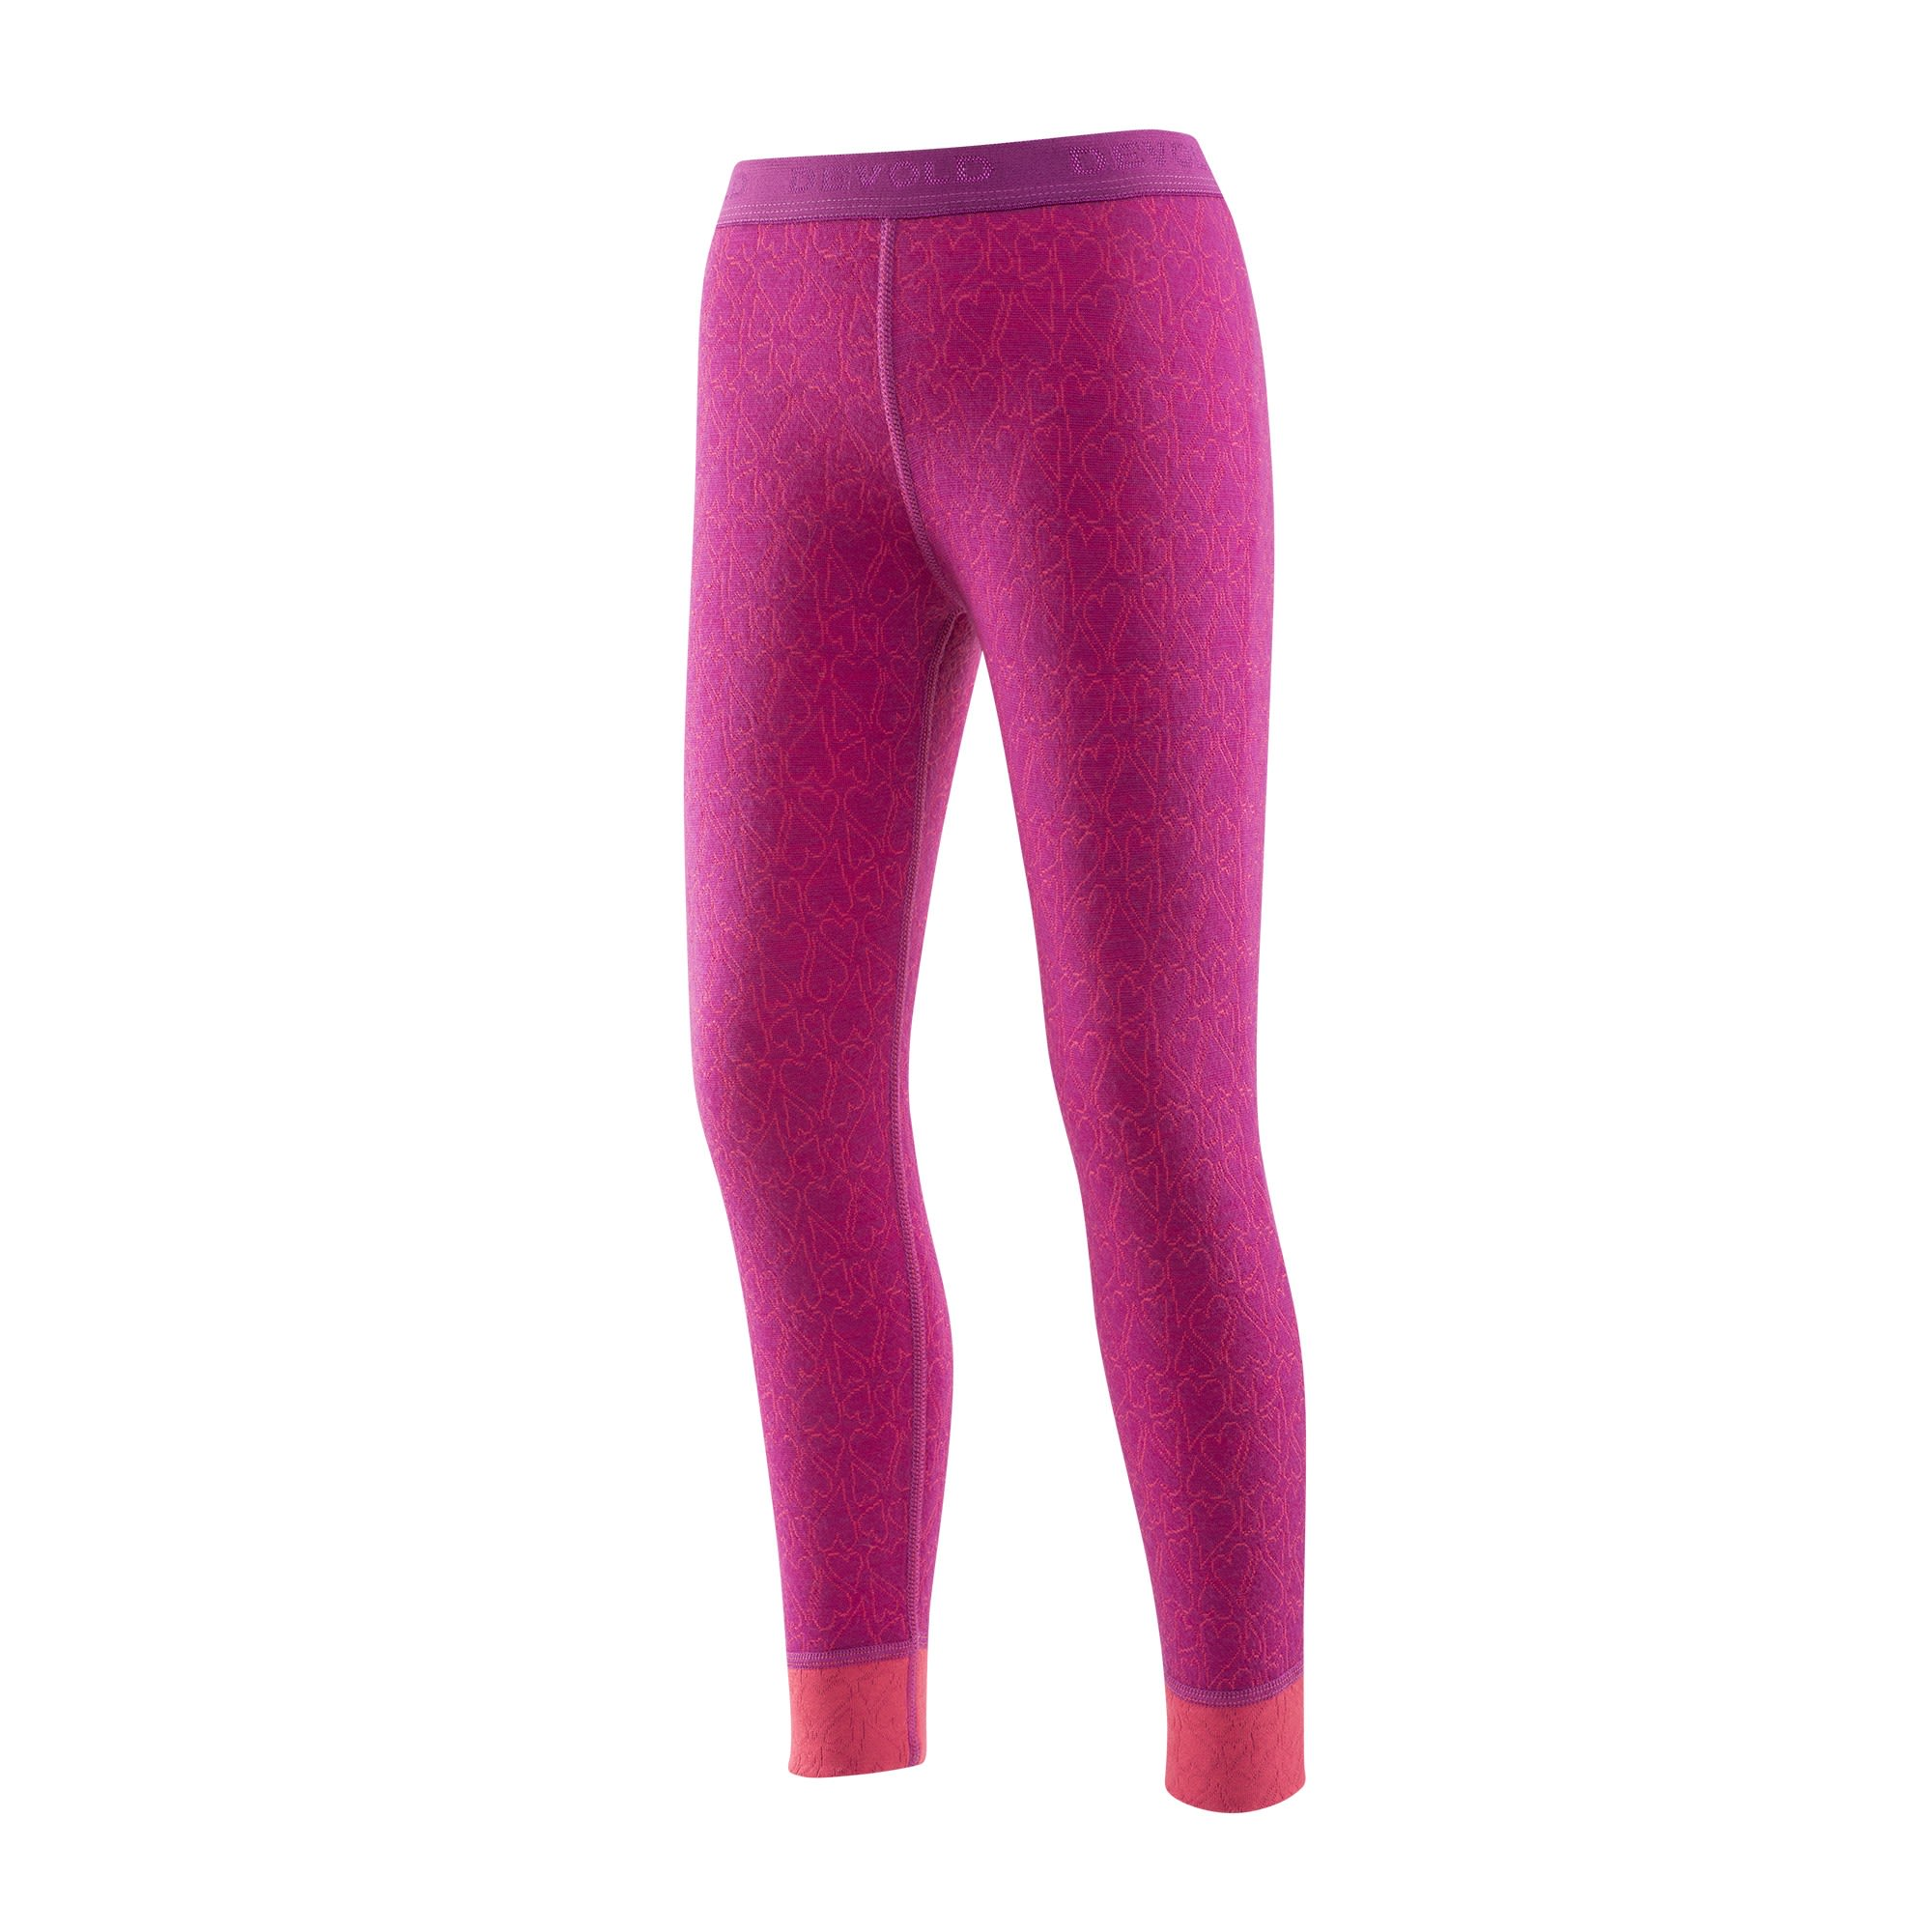 Devold Active KID Long Johns Pink, Merino 06 -Farbe Orchid, 06